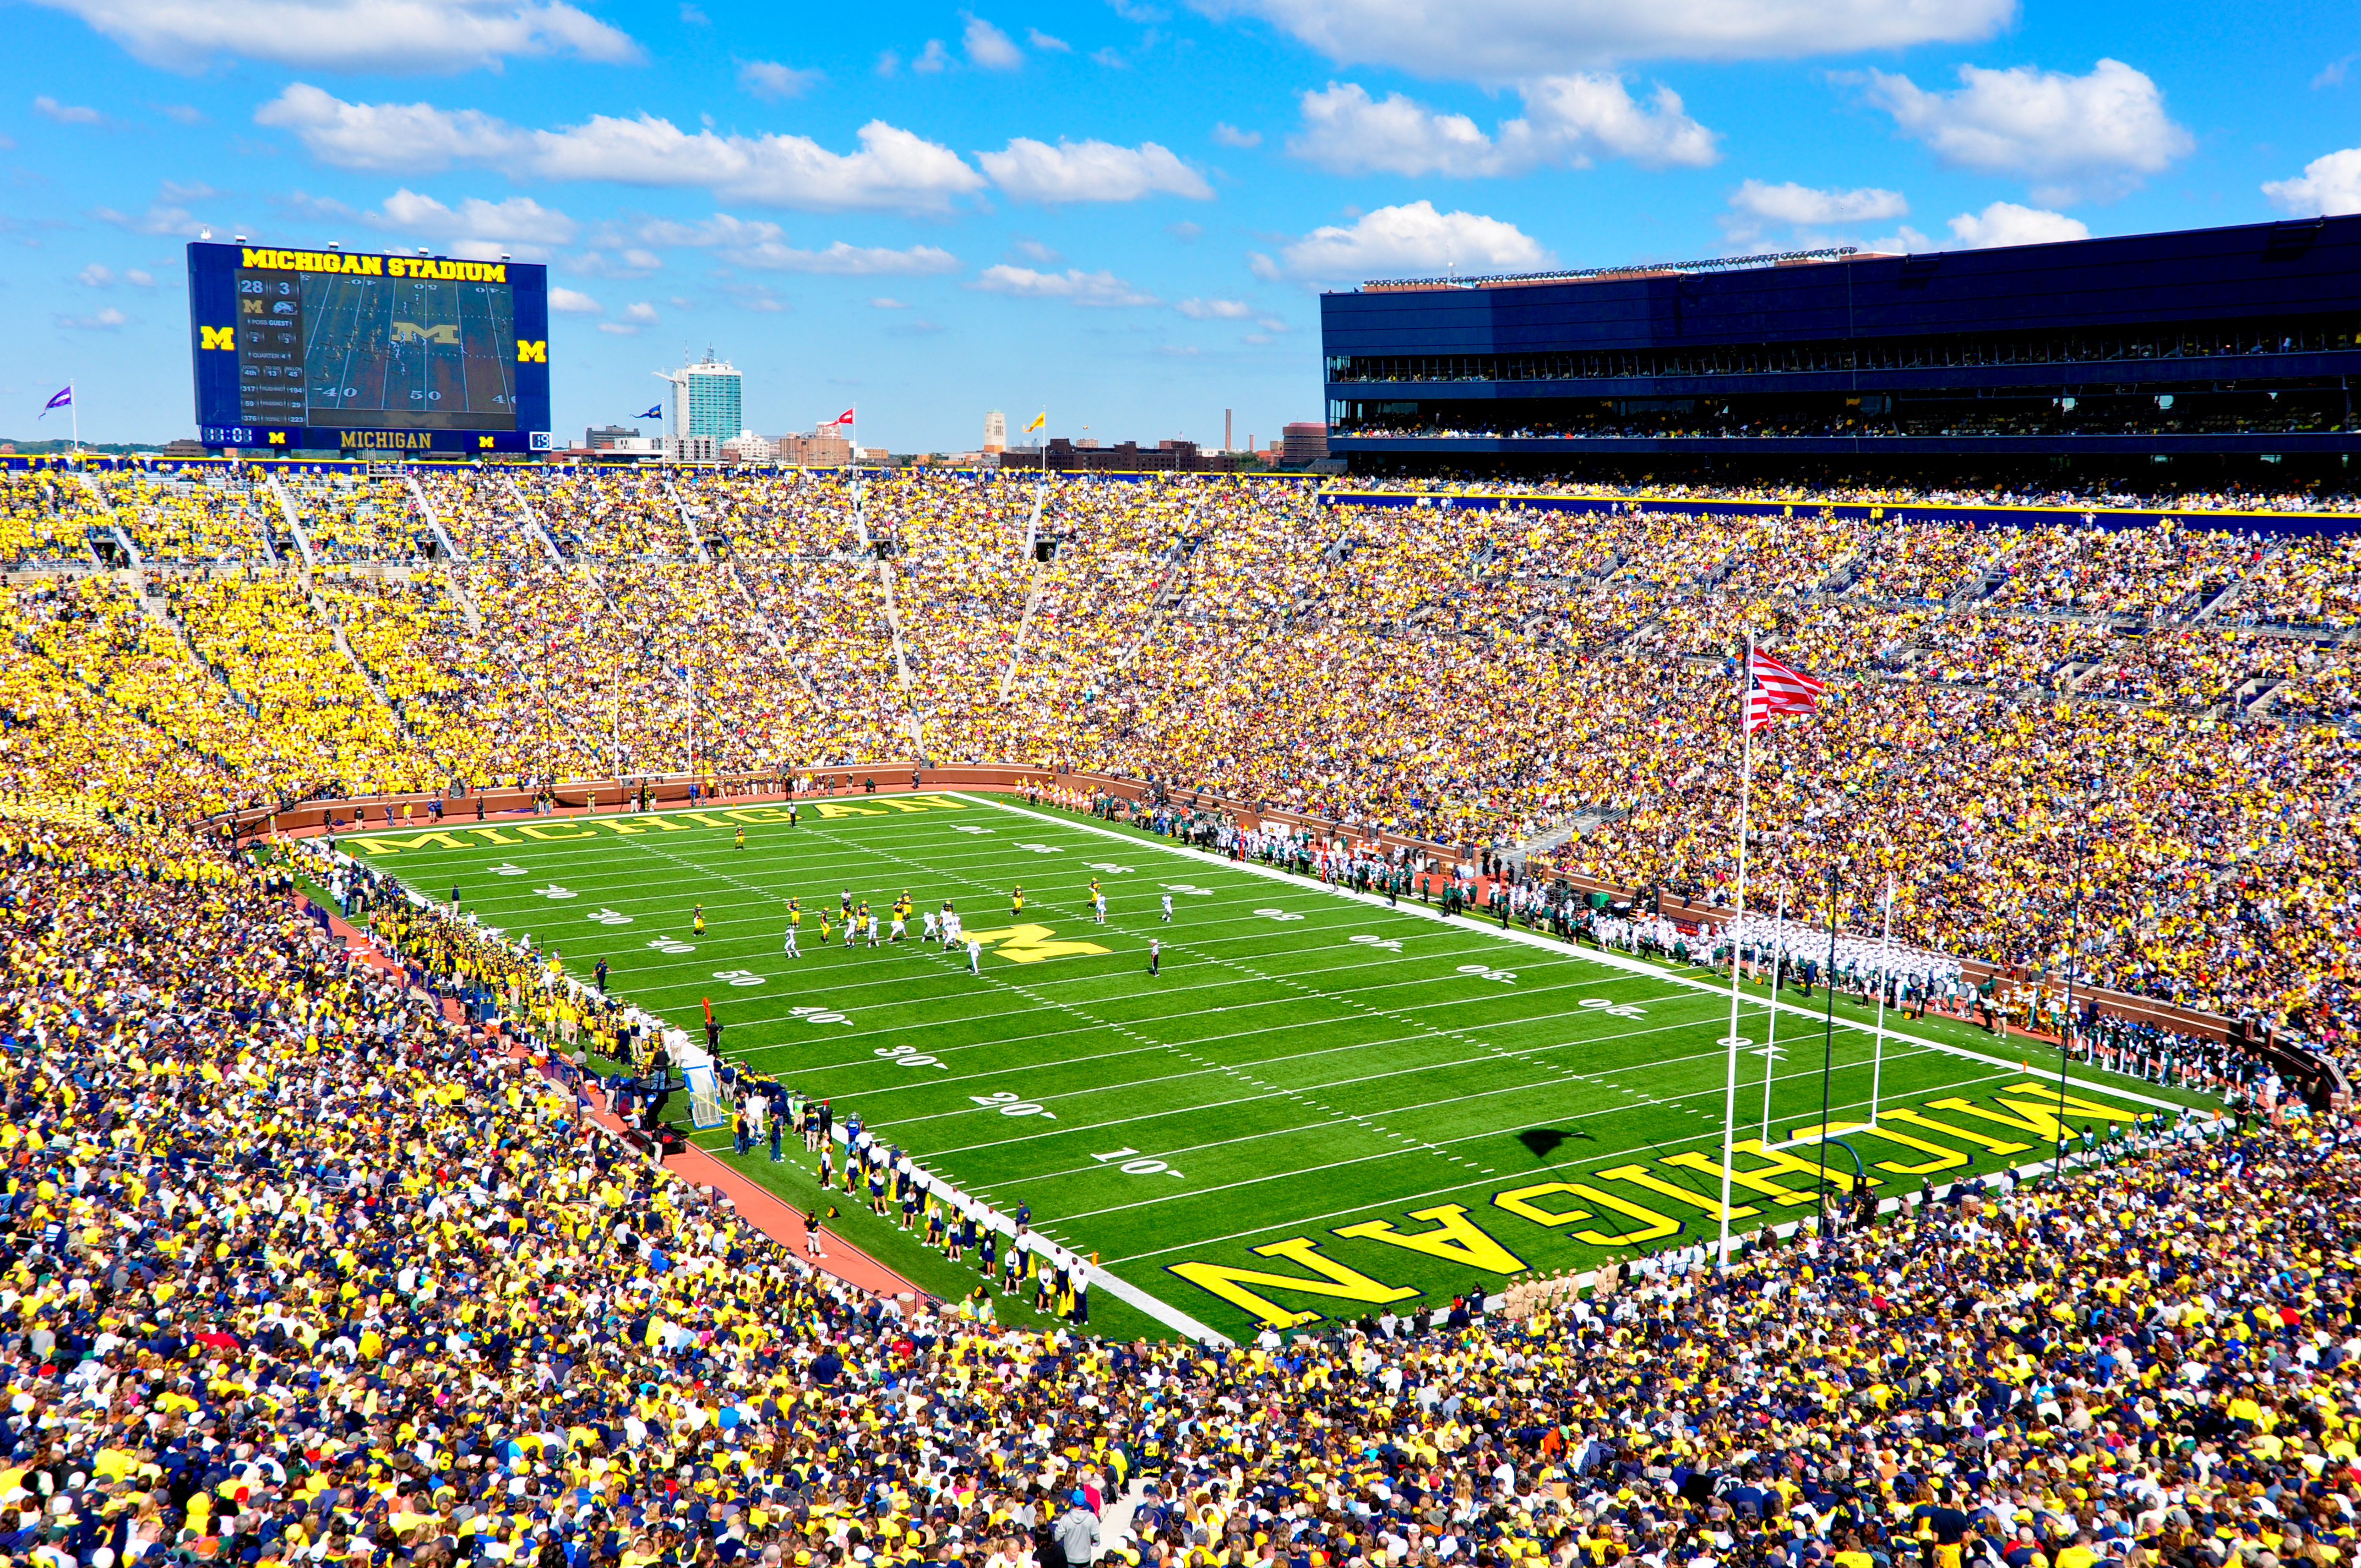 File:Michigan Stadium Sept 17,2011.jpg - Wikipedia